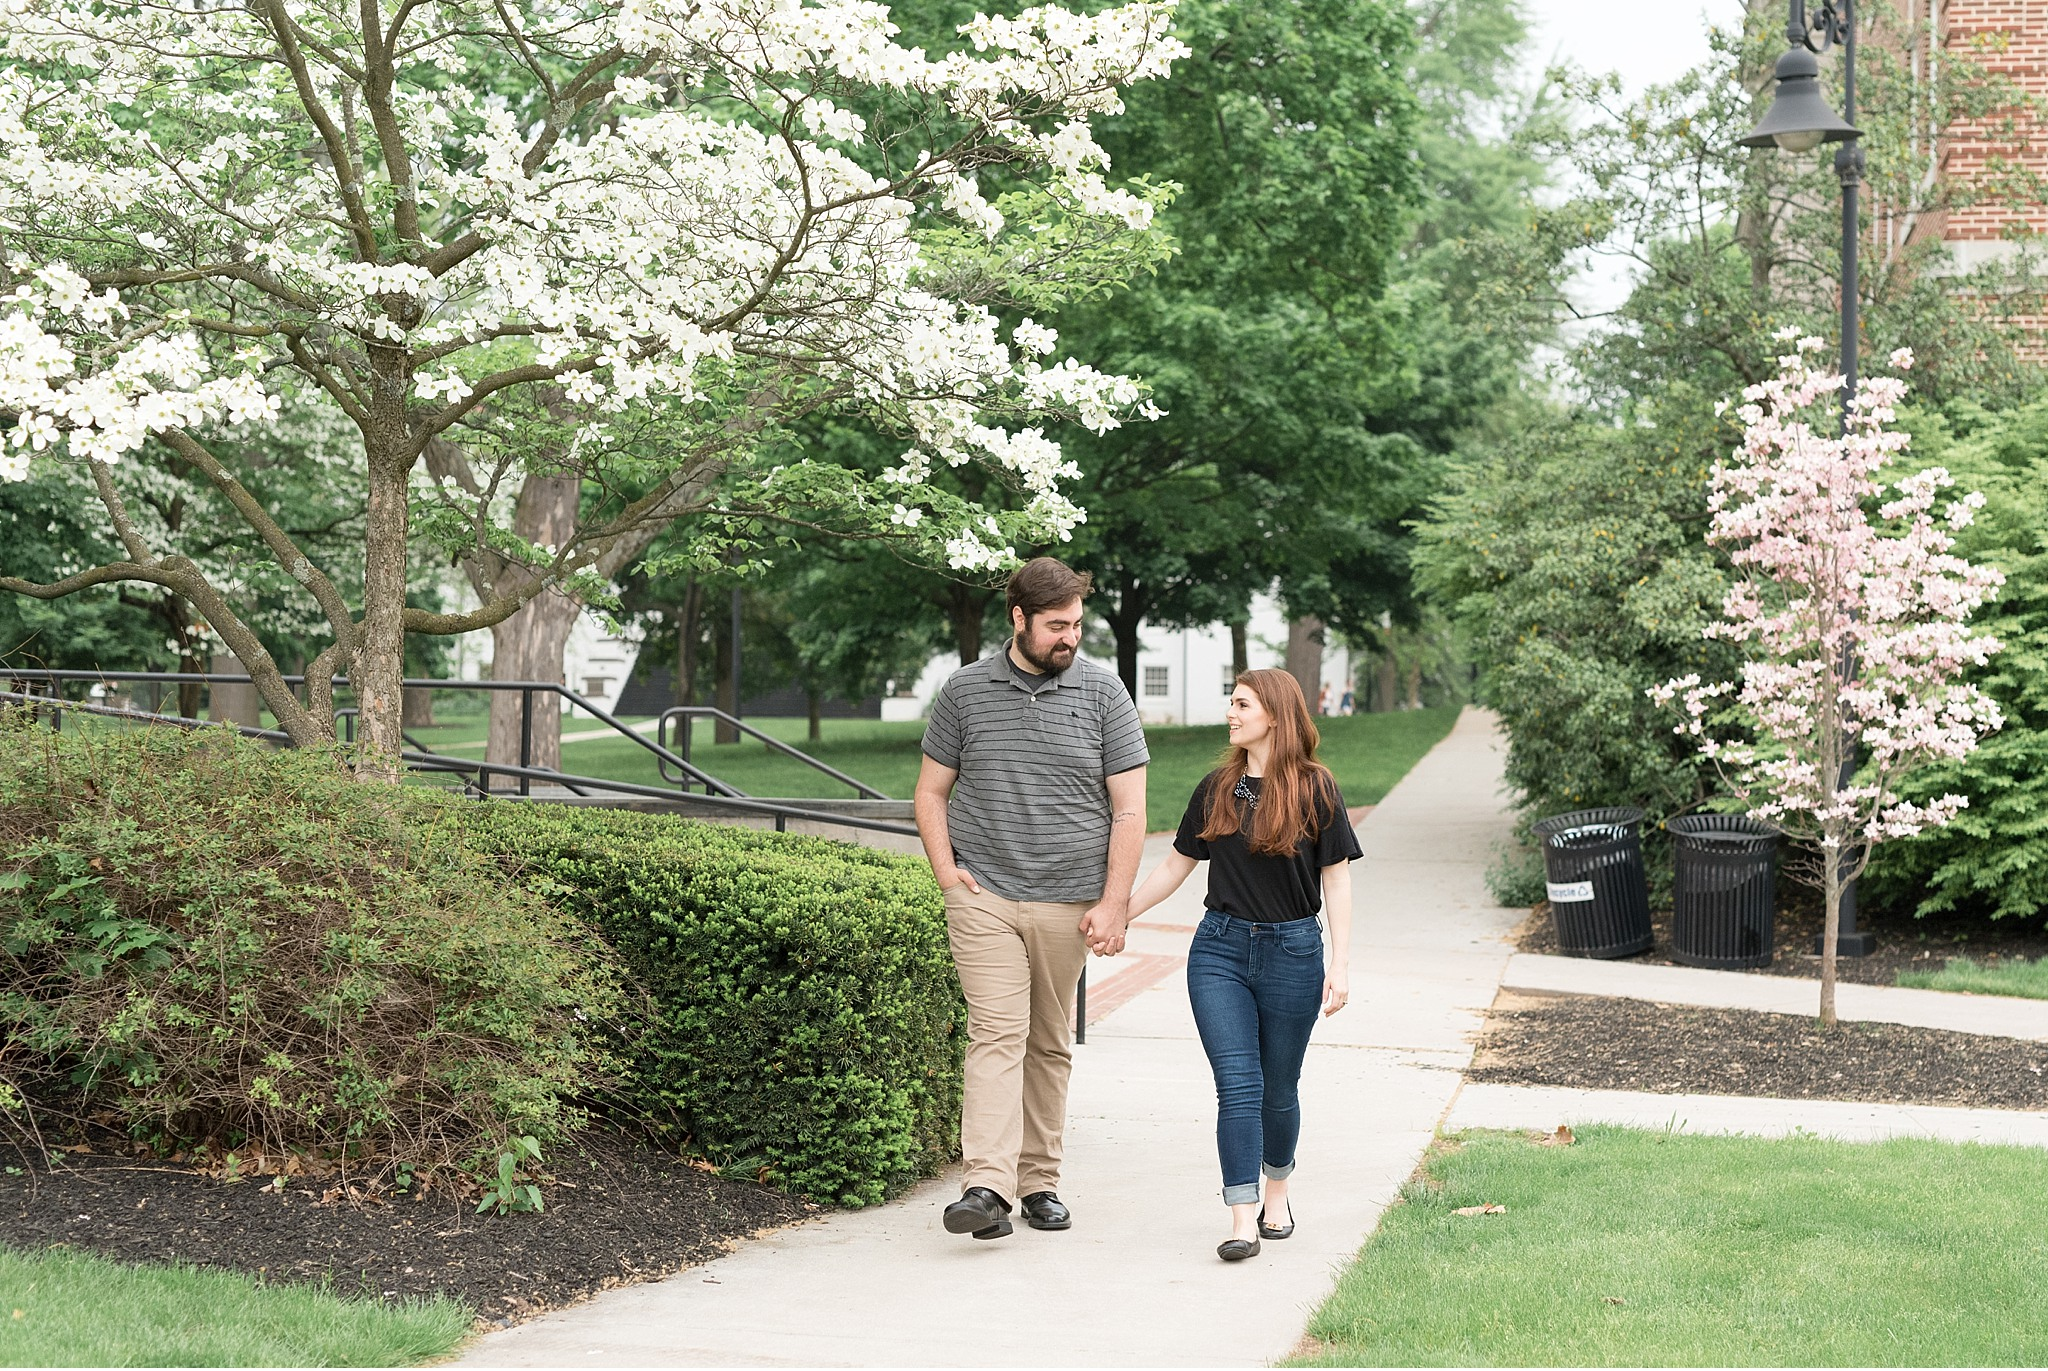 Rainy engagement Gettysburg College Campus bride and groom walking among spring trees photo